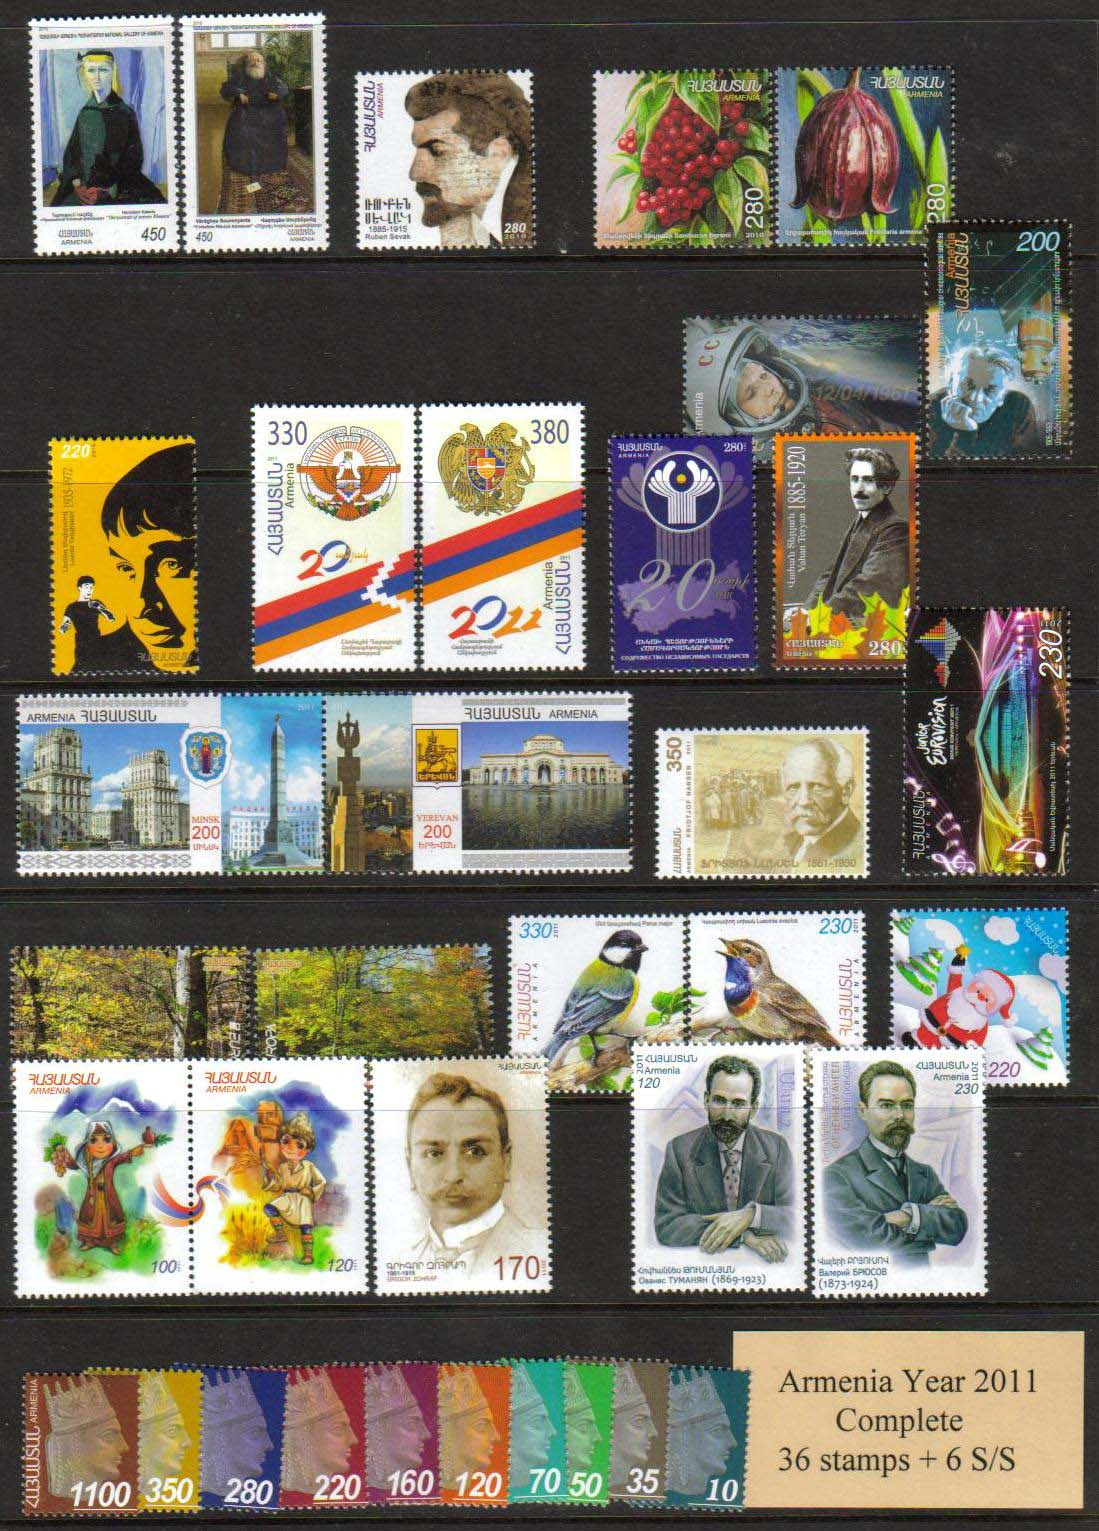 <font =1-556m><font color=red>2011 Complete Year Set. </font> Click for more